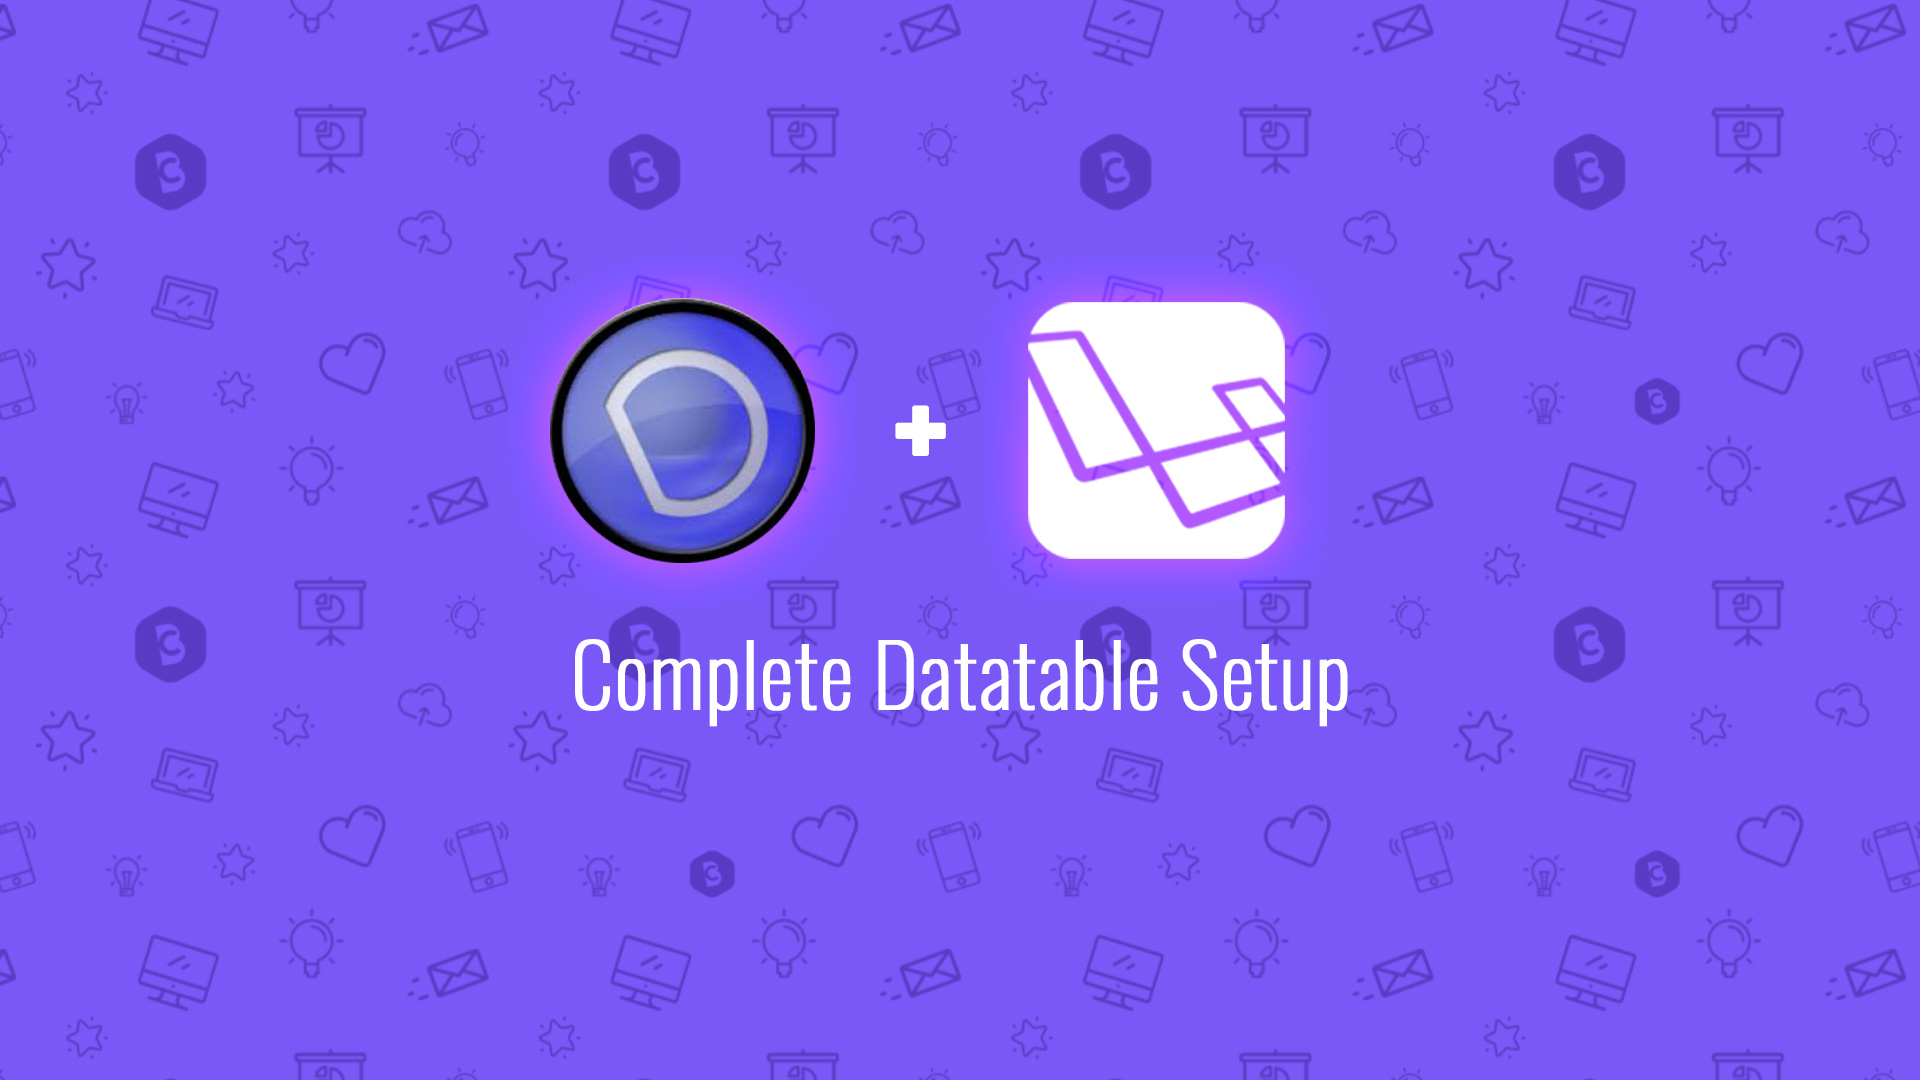 Complete Datatable Setup - Code Briefly